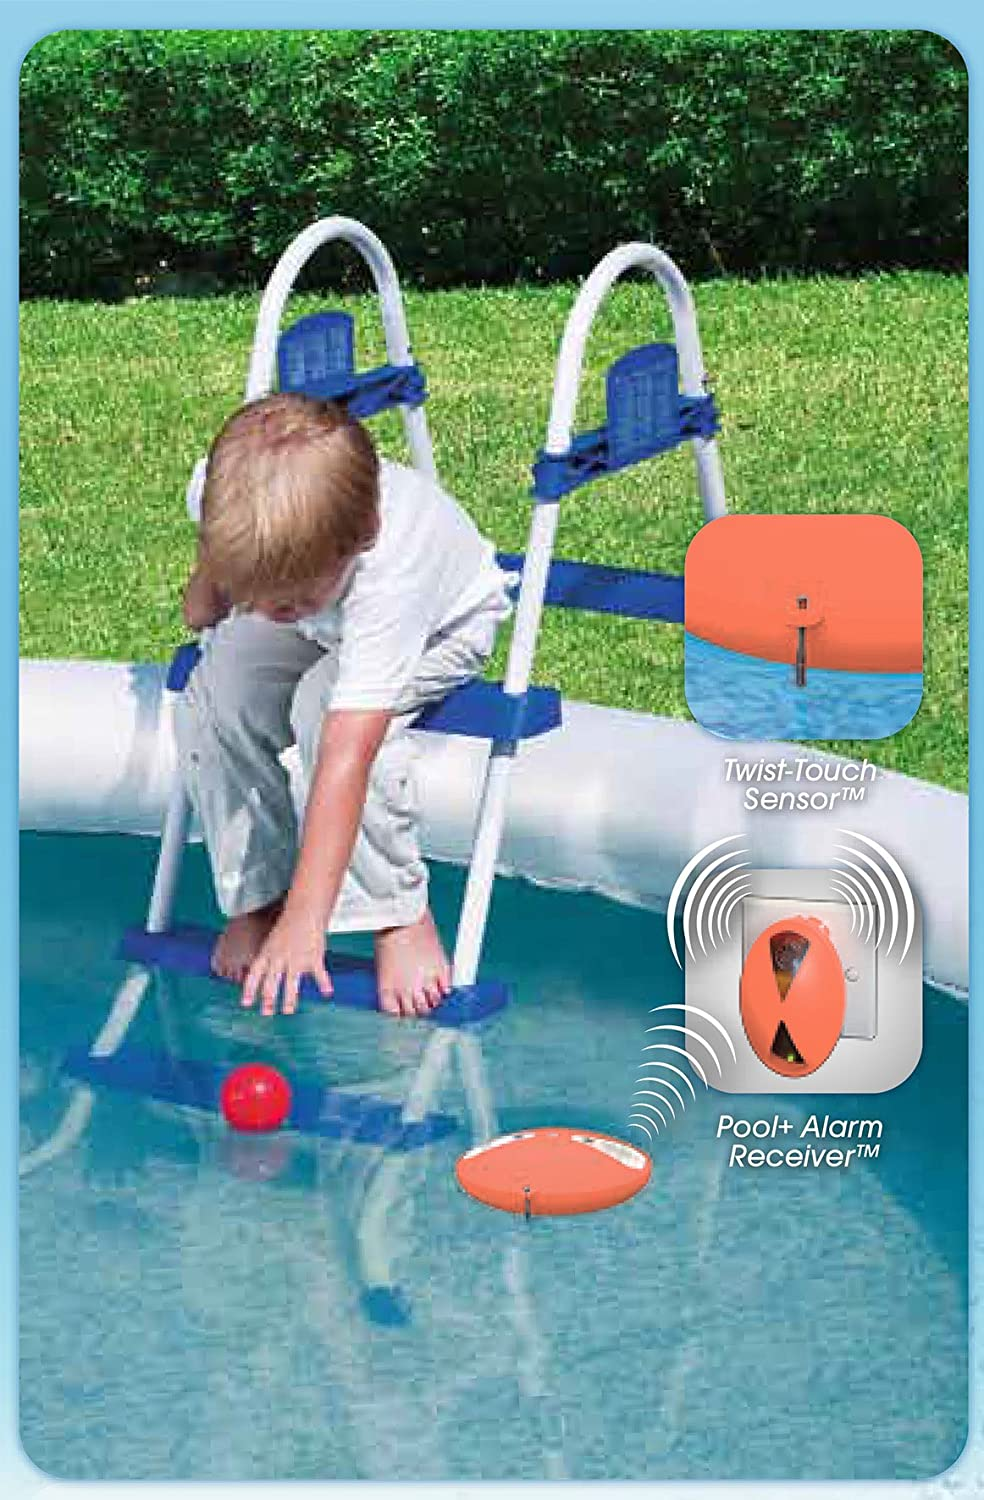 Alarma de seguridad de acceso pool boy: Amazon.es: Jardín